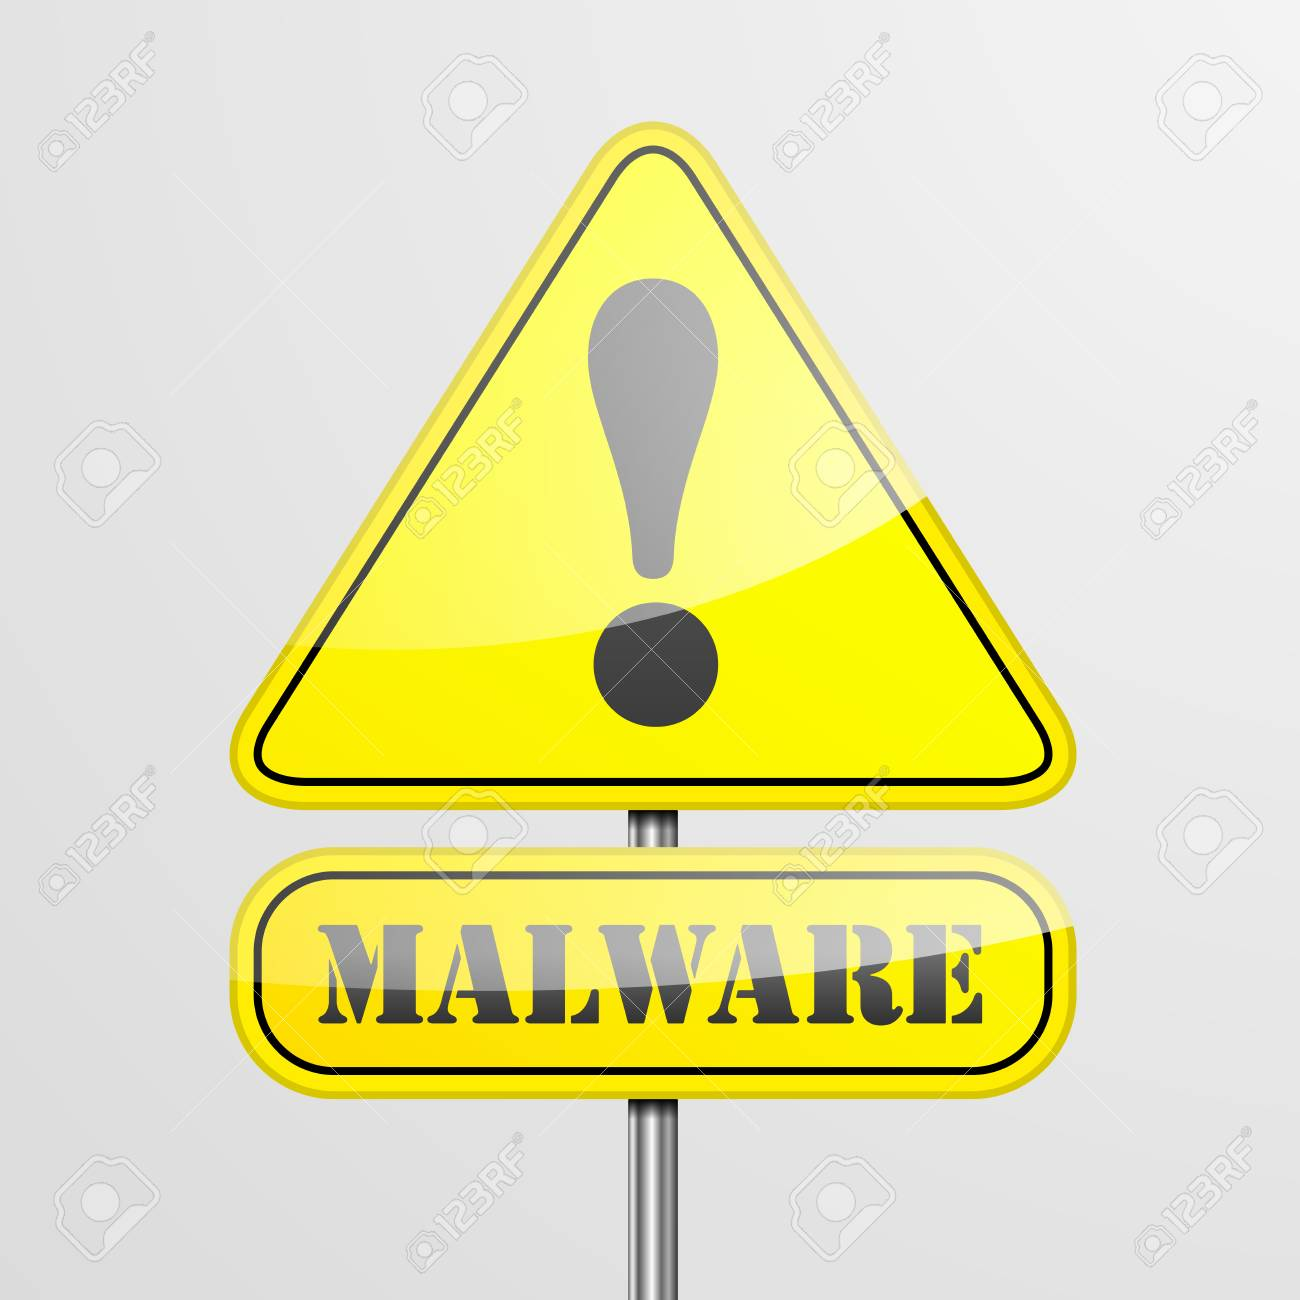 detailed illustration of a malware warning roadsign, eps10 vector Stock Vector - 27331911